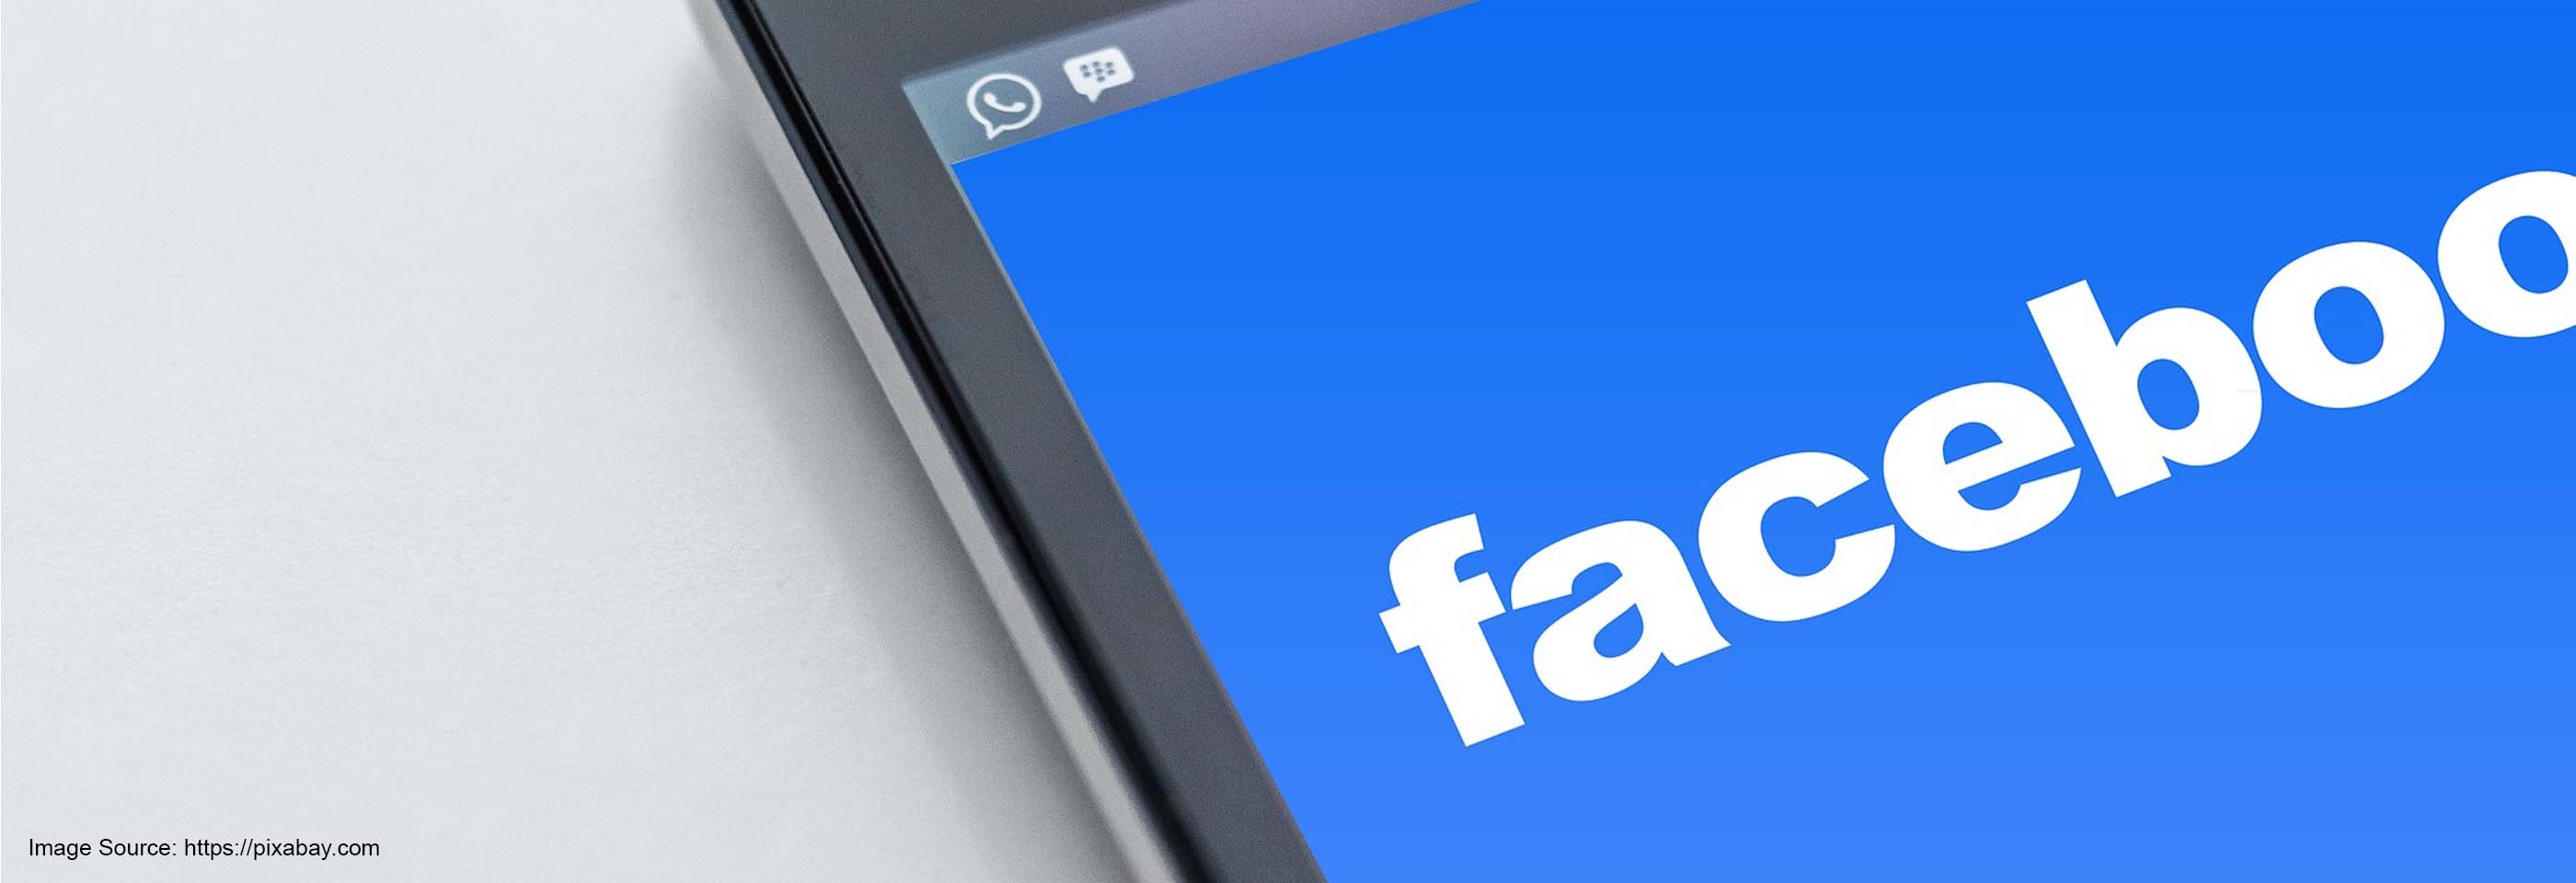 Facebook Cryptocurrency gets 10 mn USD Each from Visa, Mastercard, Paypal, and Uber